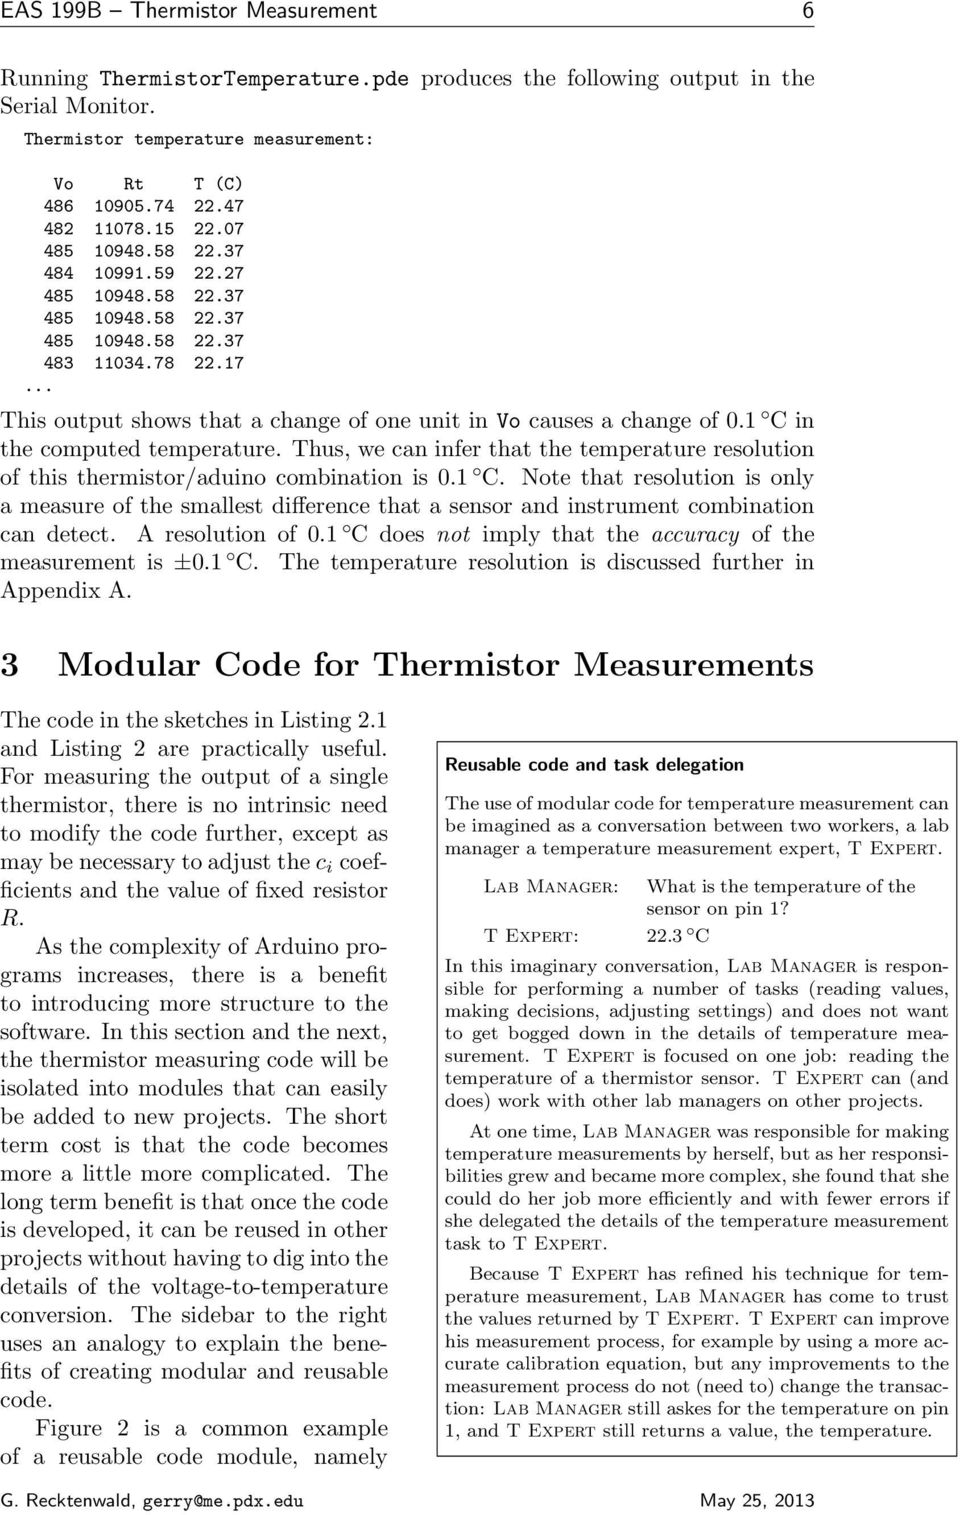 Temperature Measurement With A Thermistor And An Arduino Pdf Circuit For Measuring Using 1 C In The Computed Thus We Can Infer That Resolution 7 Eas 199b